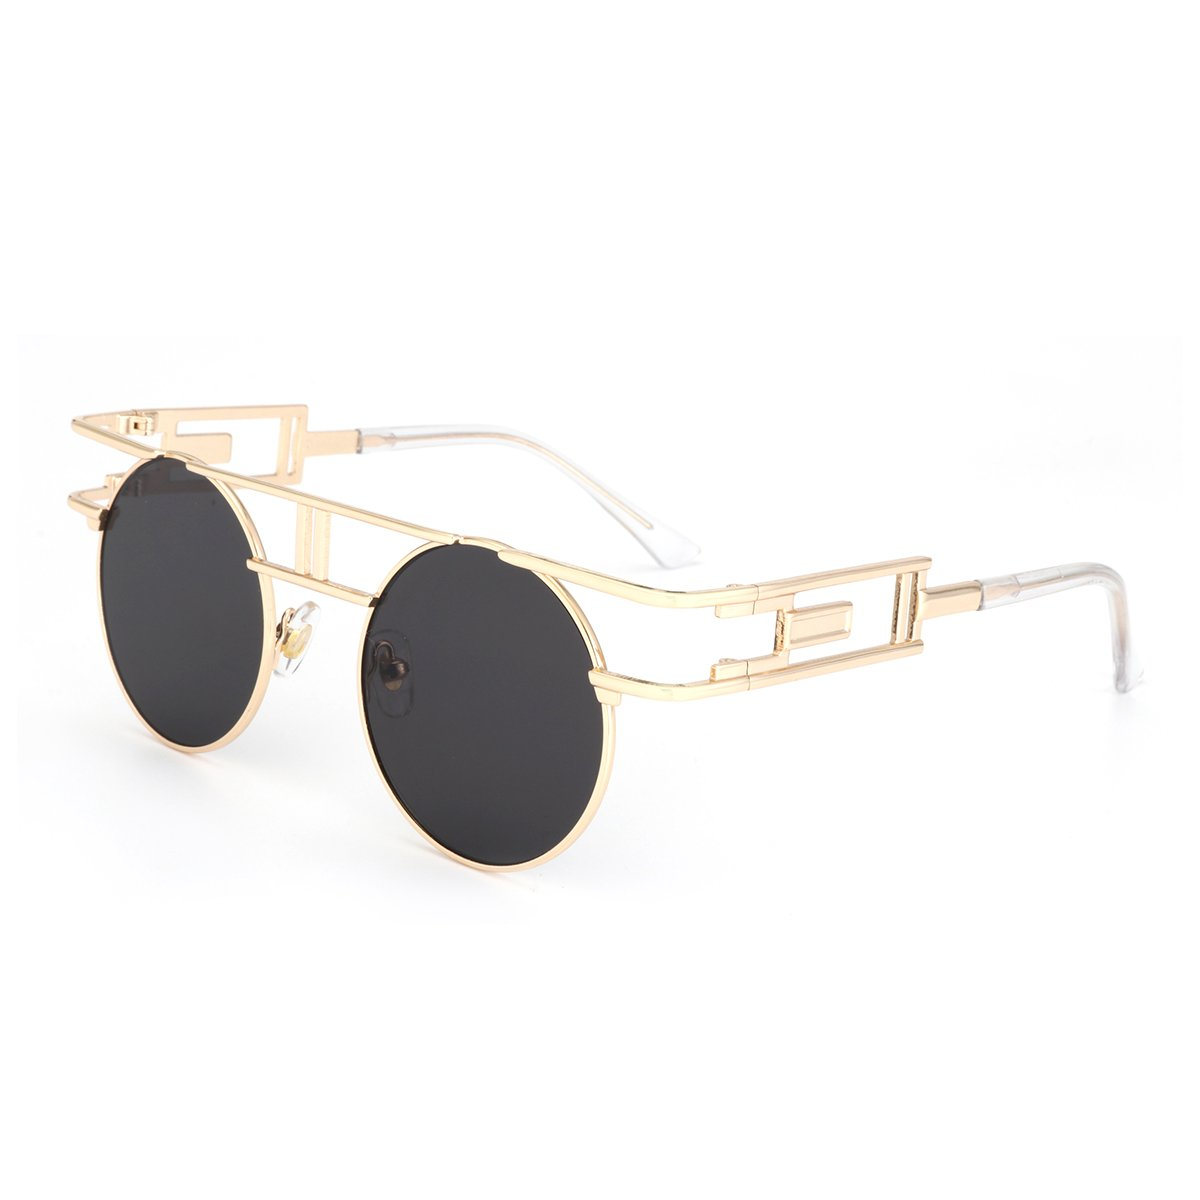 a71b08378 Amazon.com: ROYAL GIRL Gothic Steampunk Sunglasses Women Men Round Metal  Circle Classic Retro Shades Gold Frame Black Lens: Clothing